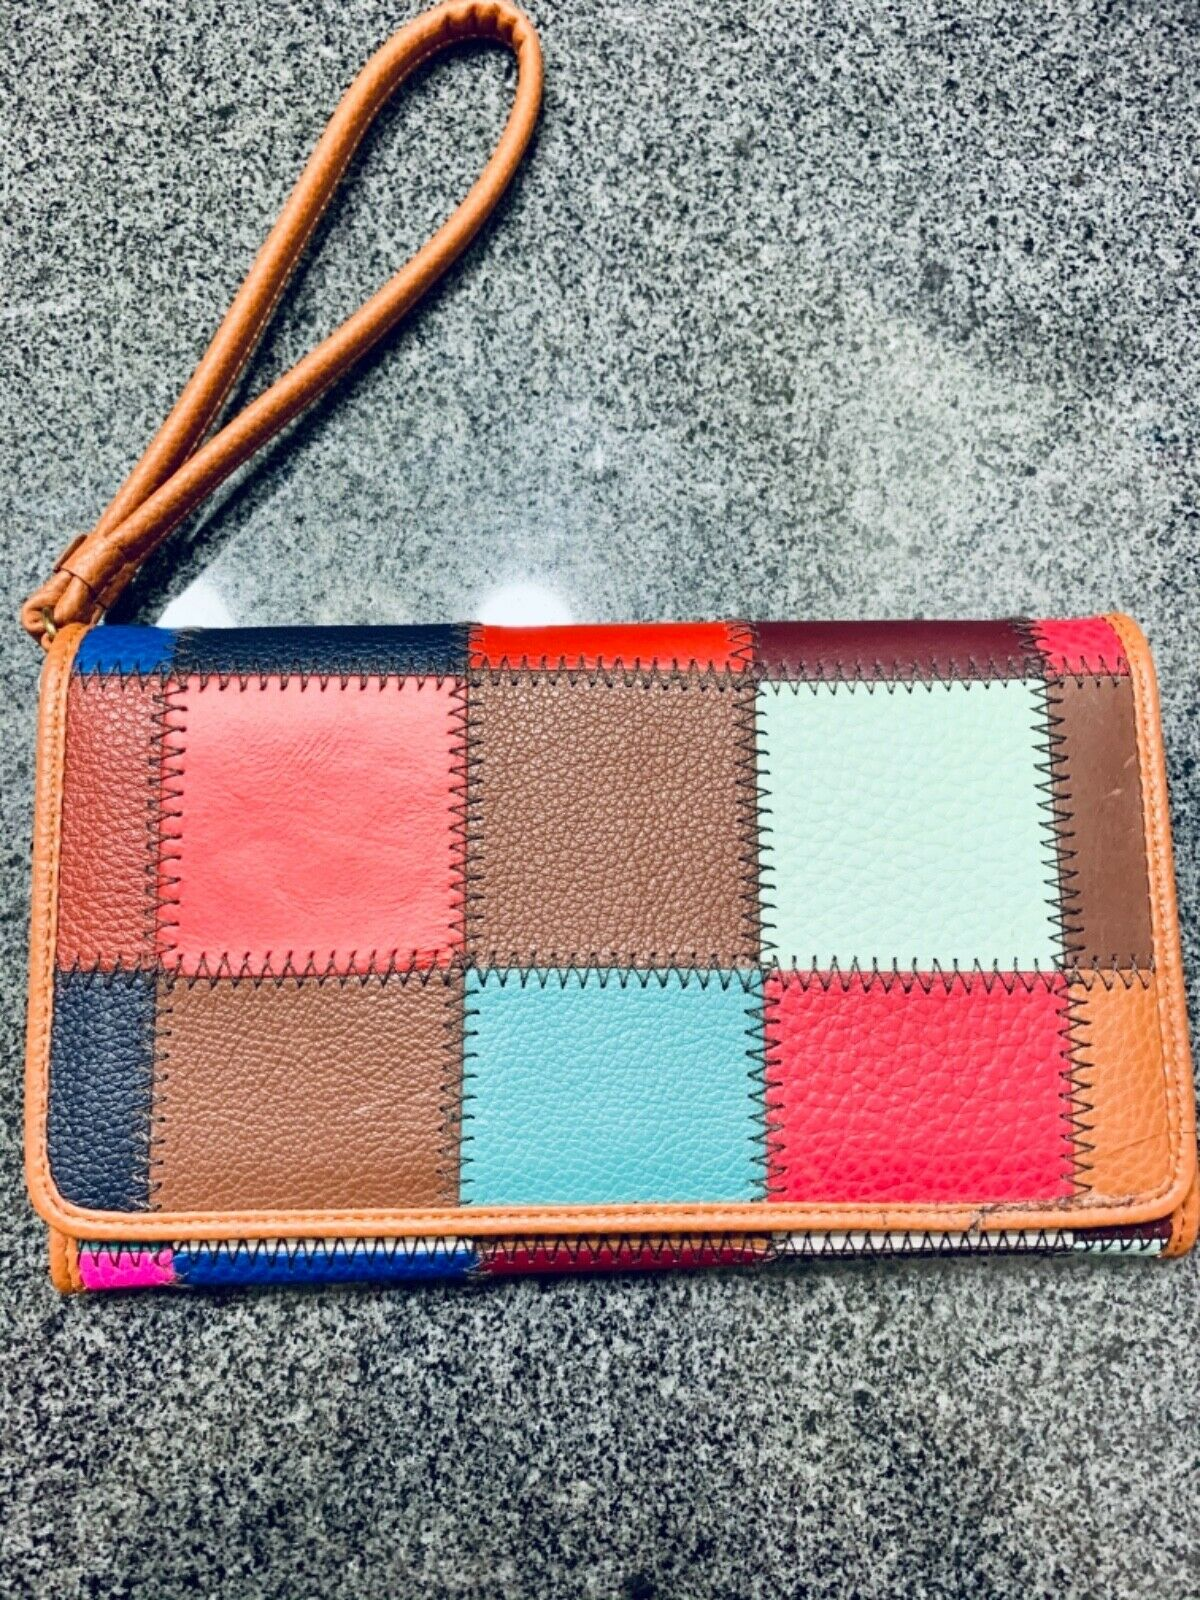 New Kooba Wallet Leather multi color patch Wallet